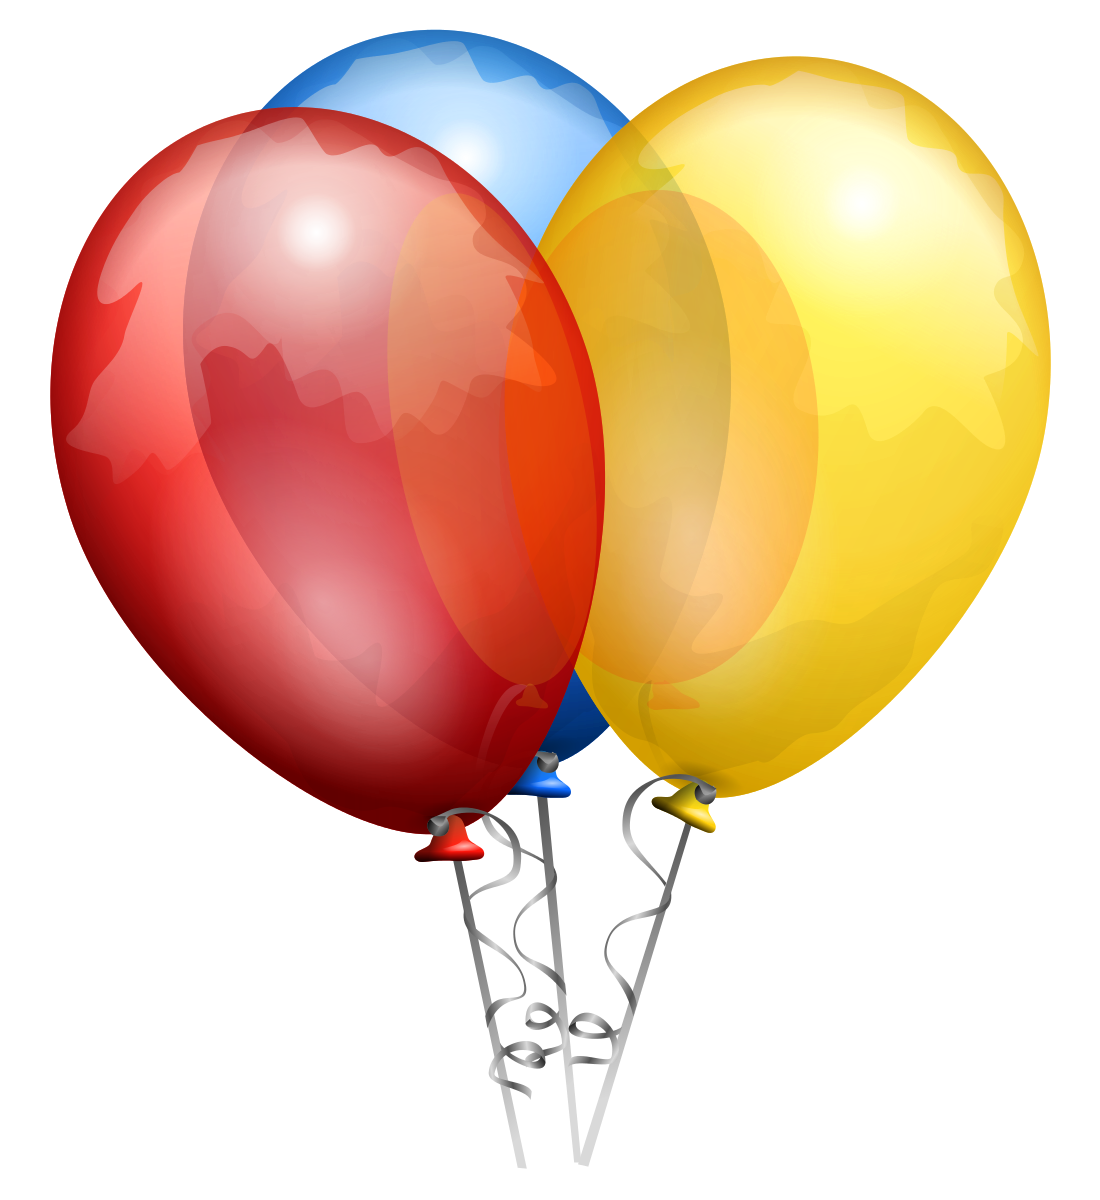 Clipart balloon oval. Frames illustrations hd images